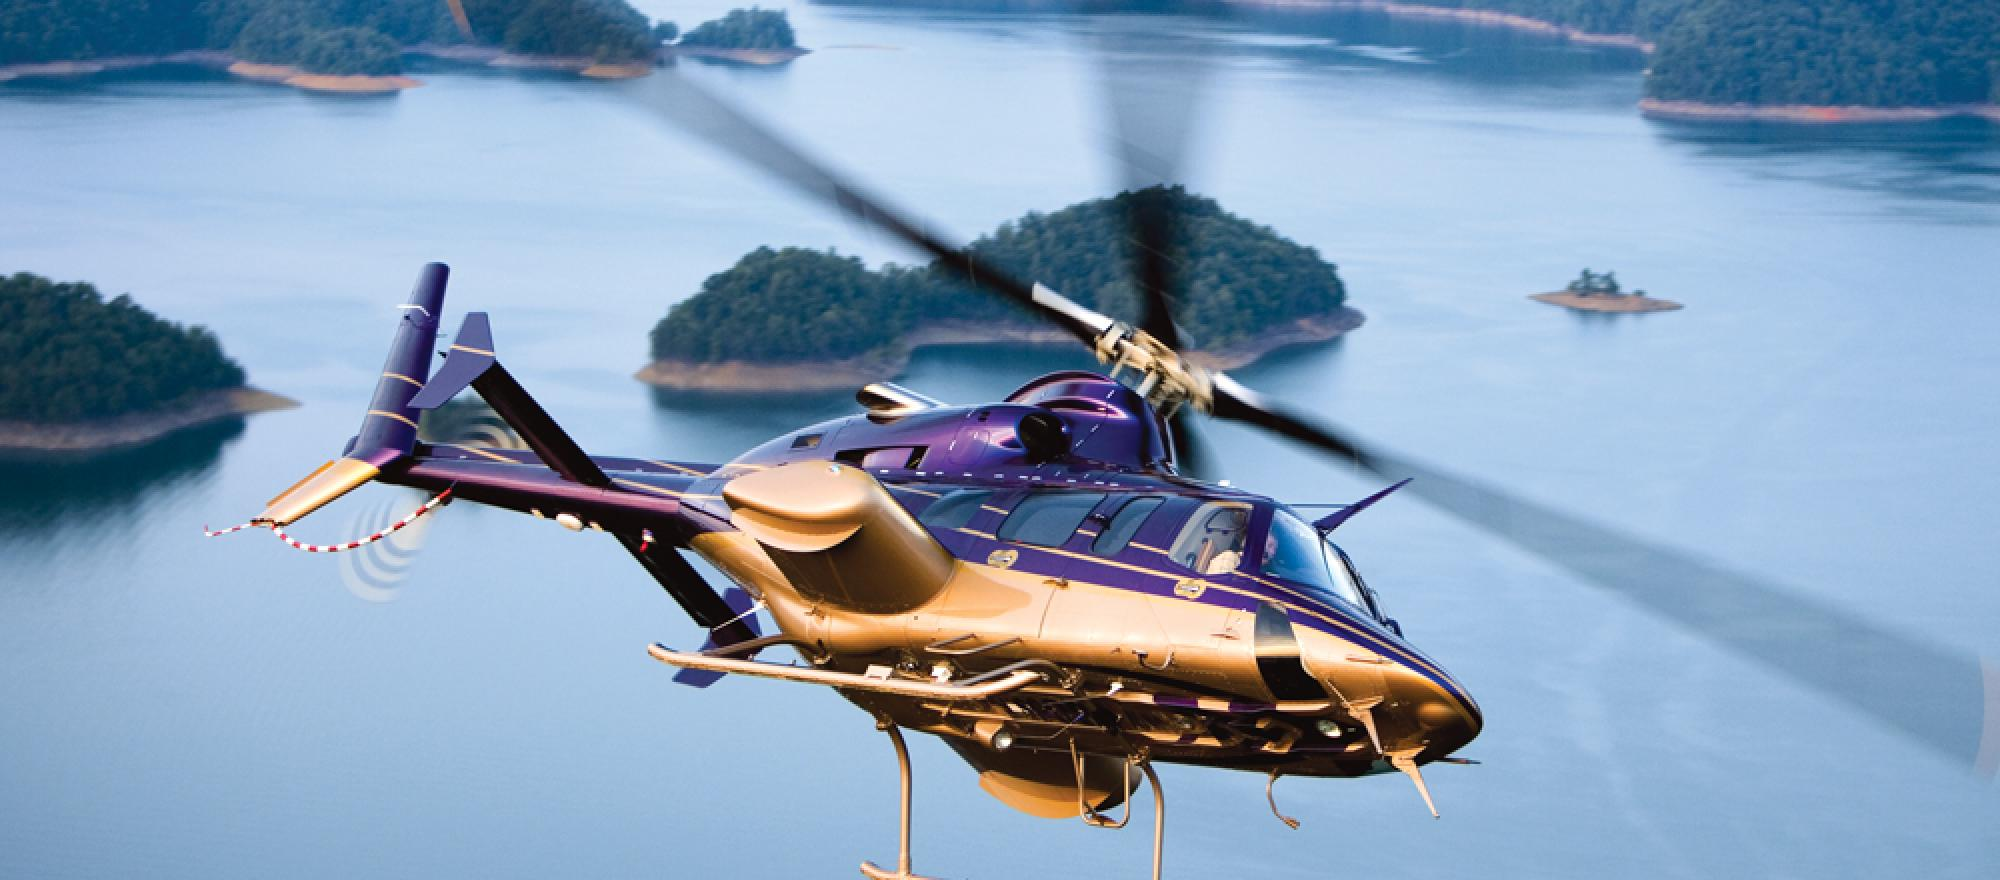 new helicopter for sale with Bell 430 on B407gx psp in addition 04622 also High Resolution Photos Us Navy Destroyer Collision additionally H125 oshp also Pp 1401234.